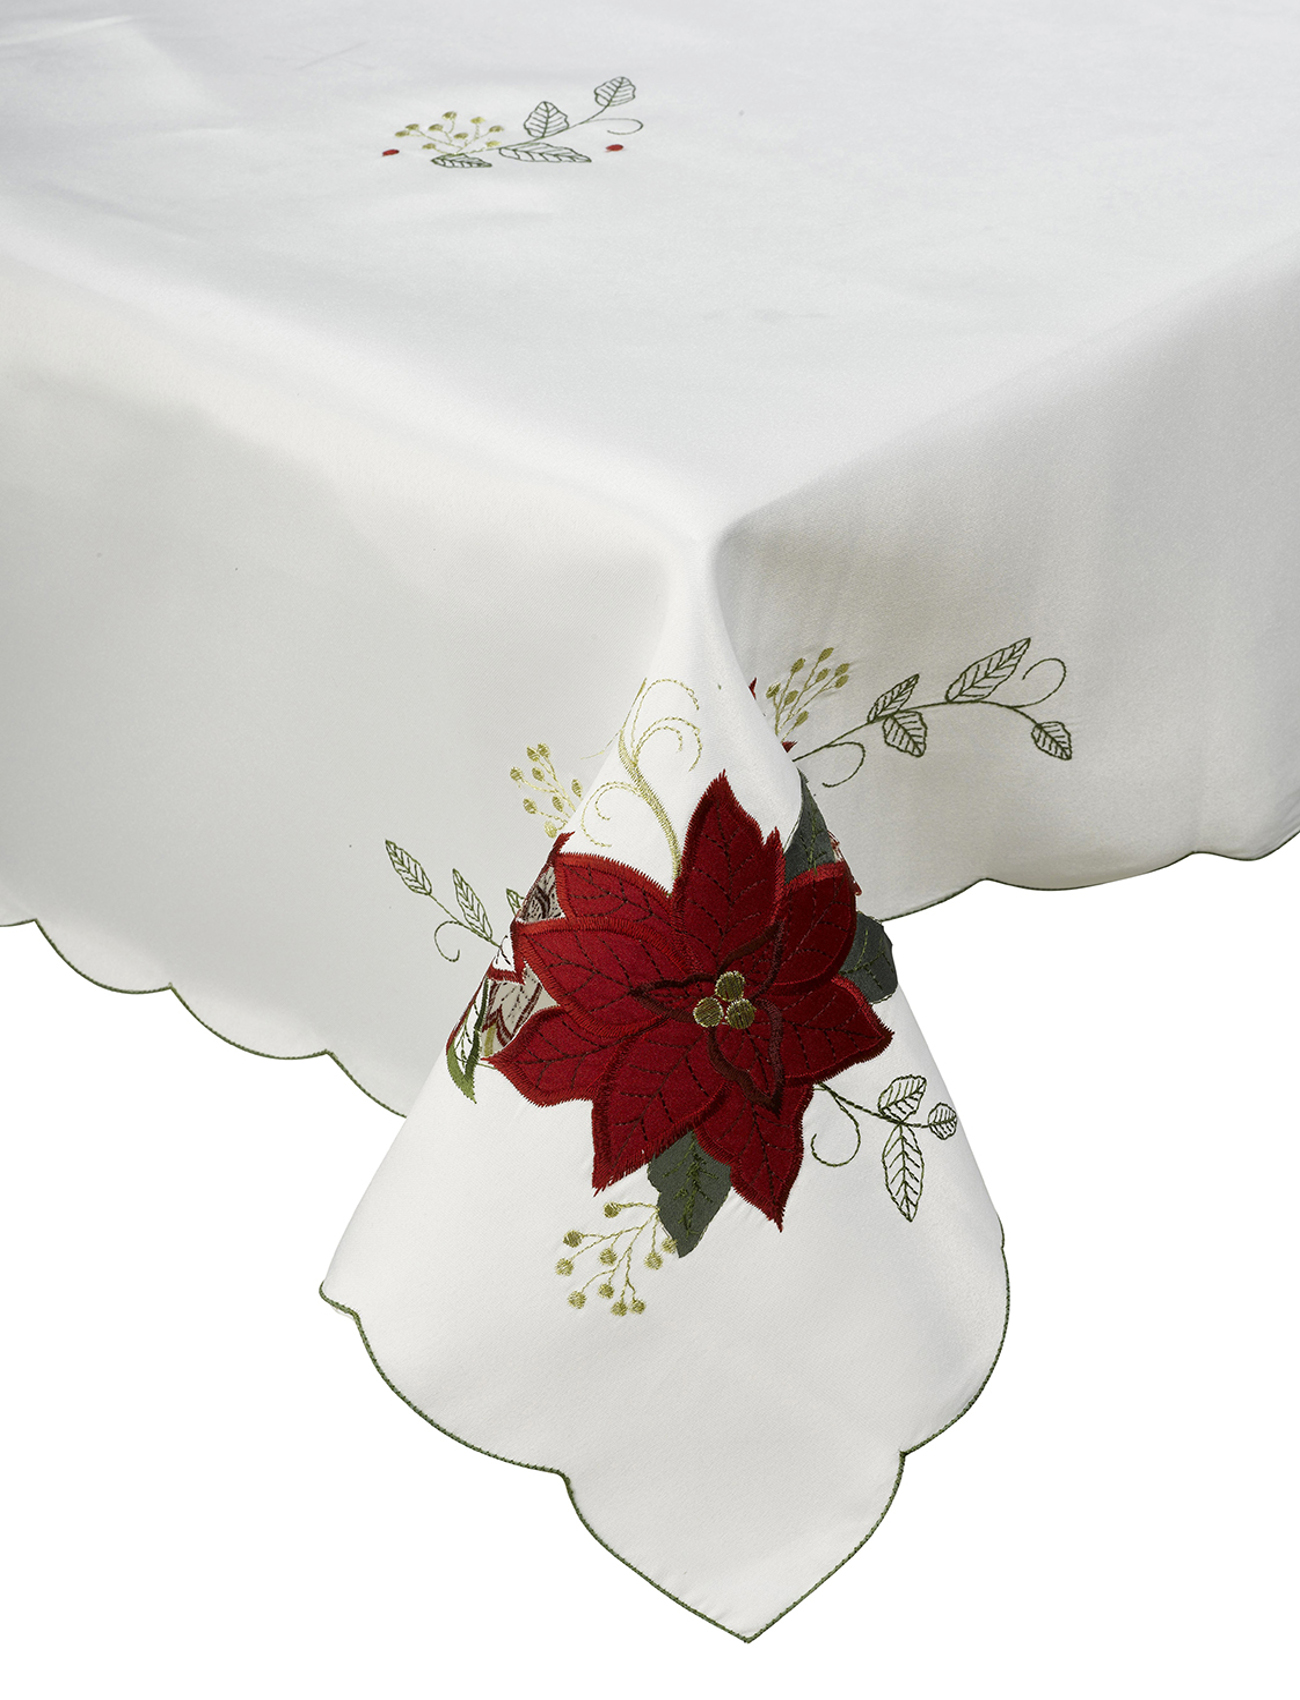 Xmas Table Linen Part - 24: Floral-Embroidered-Christmas-Tablecloth-Festive-Xmas-Table-Linen-